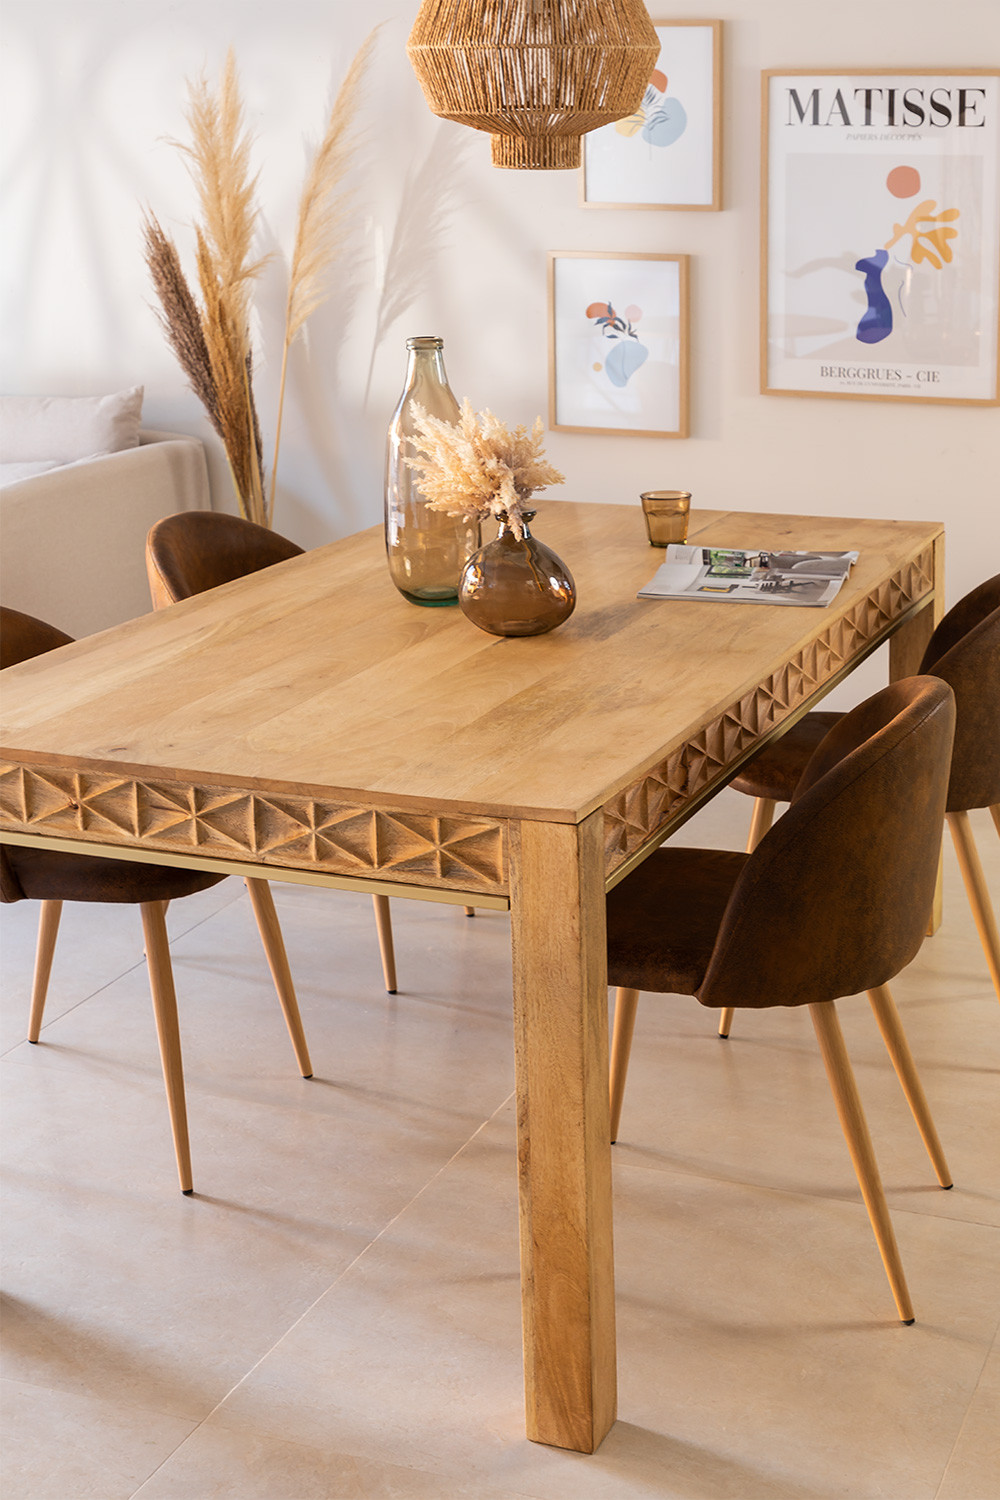 Rectangular Wooden Dining Table (183x94 cm) Alba, gallery image 1